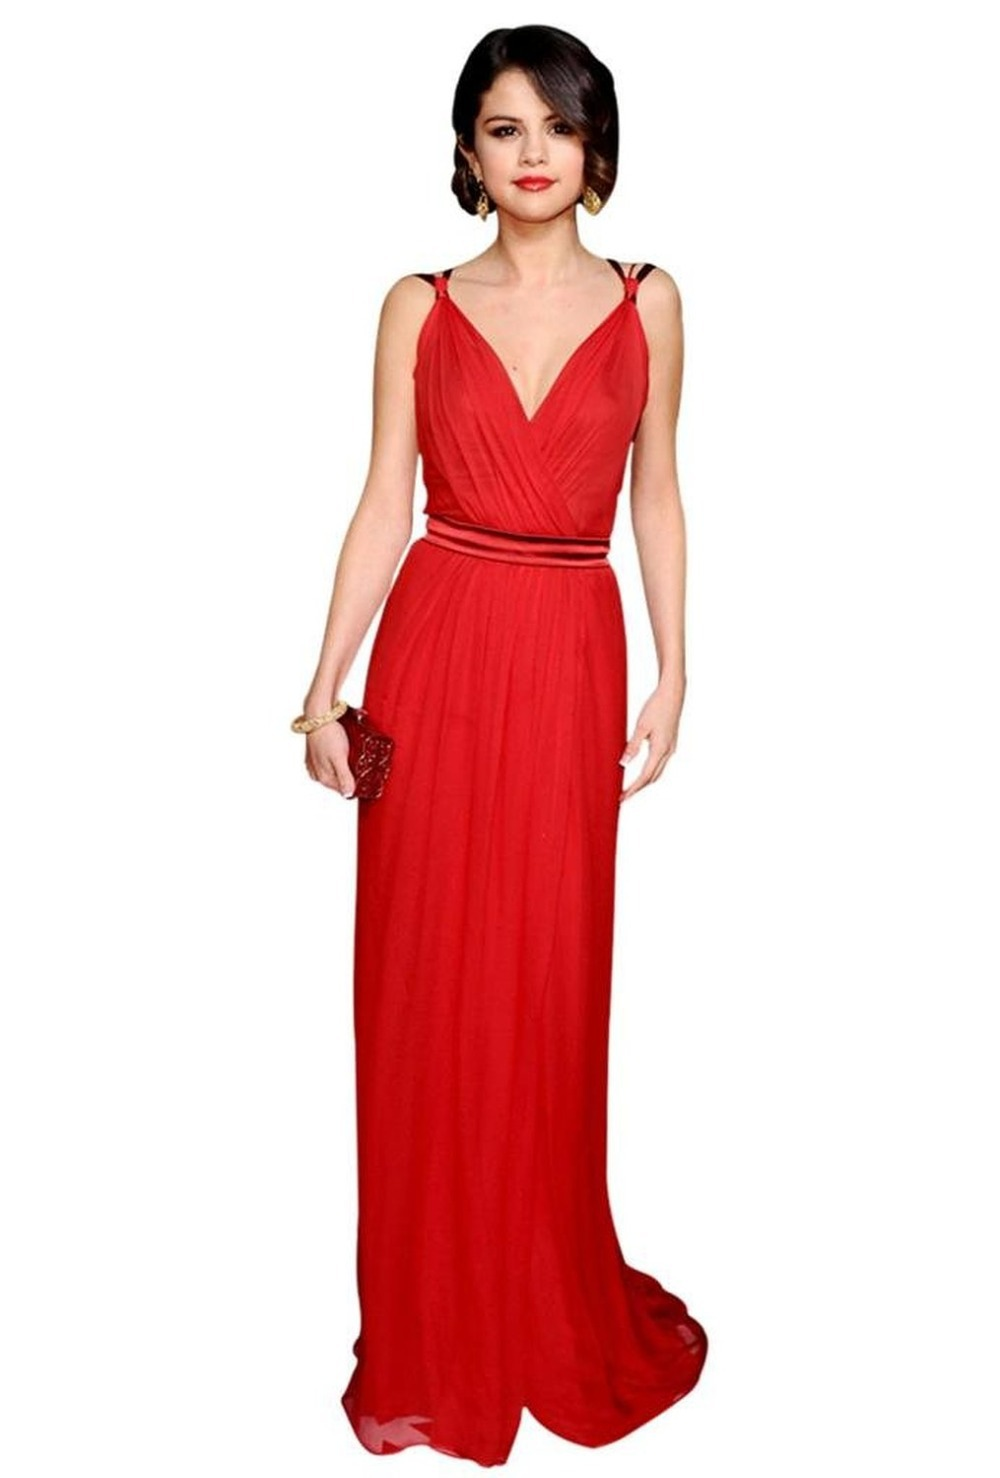 Aliexpress.com : Buy Red Elegant Sexy V Neck sleeveless pleated thin sash Strap Floor length Chiffon Evening Dress/ED033 from Reliable dress up sex girls suppliers on Queen's Dress&Shinning Life